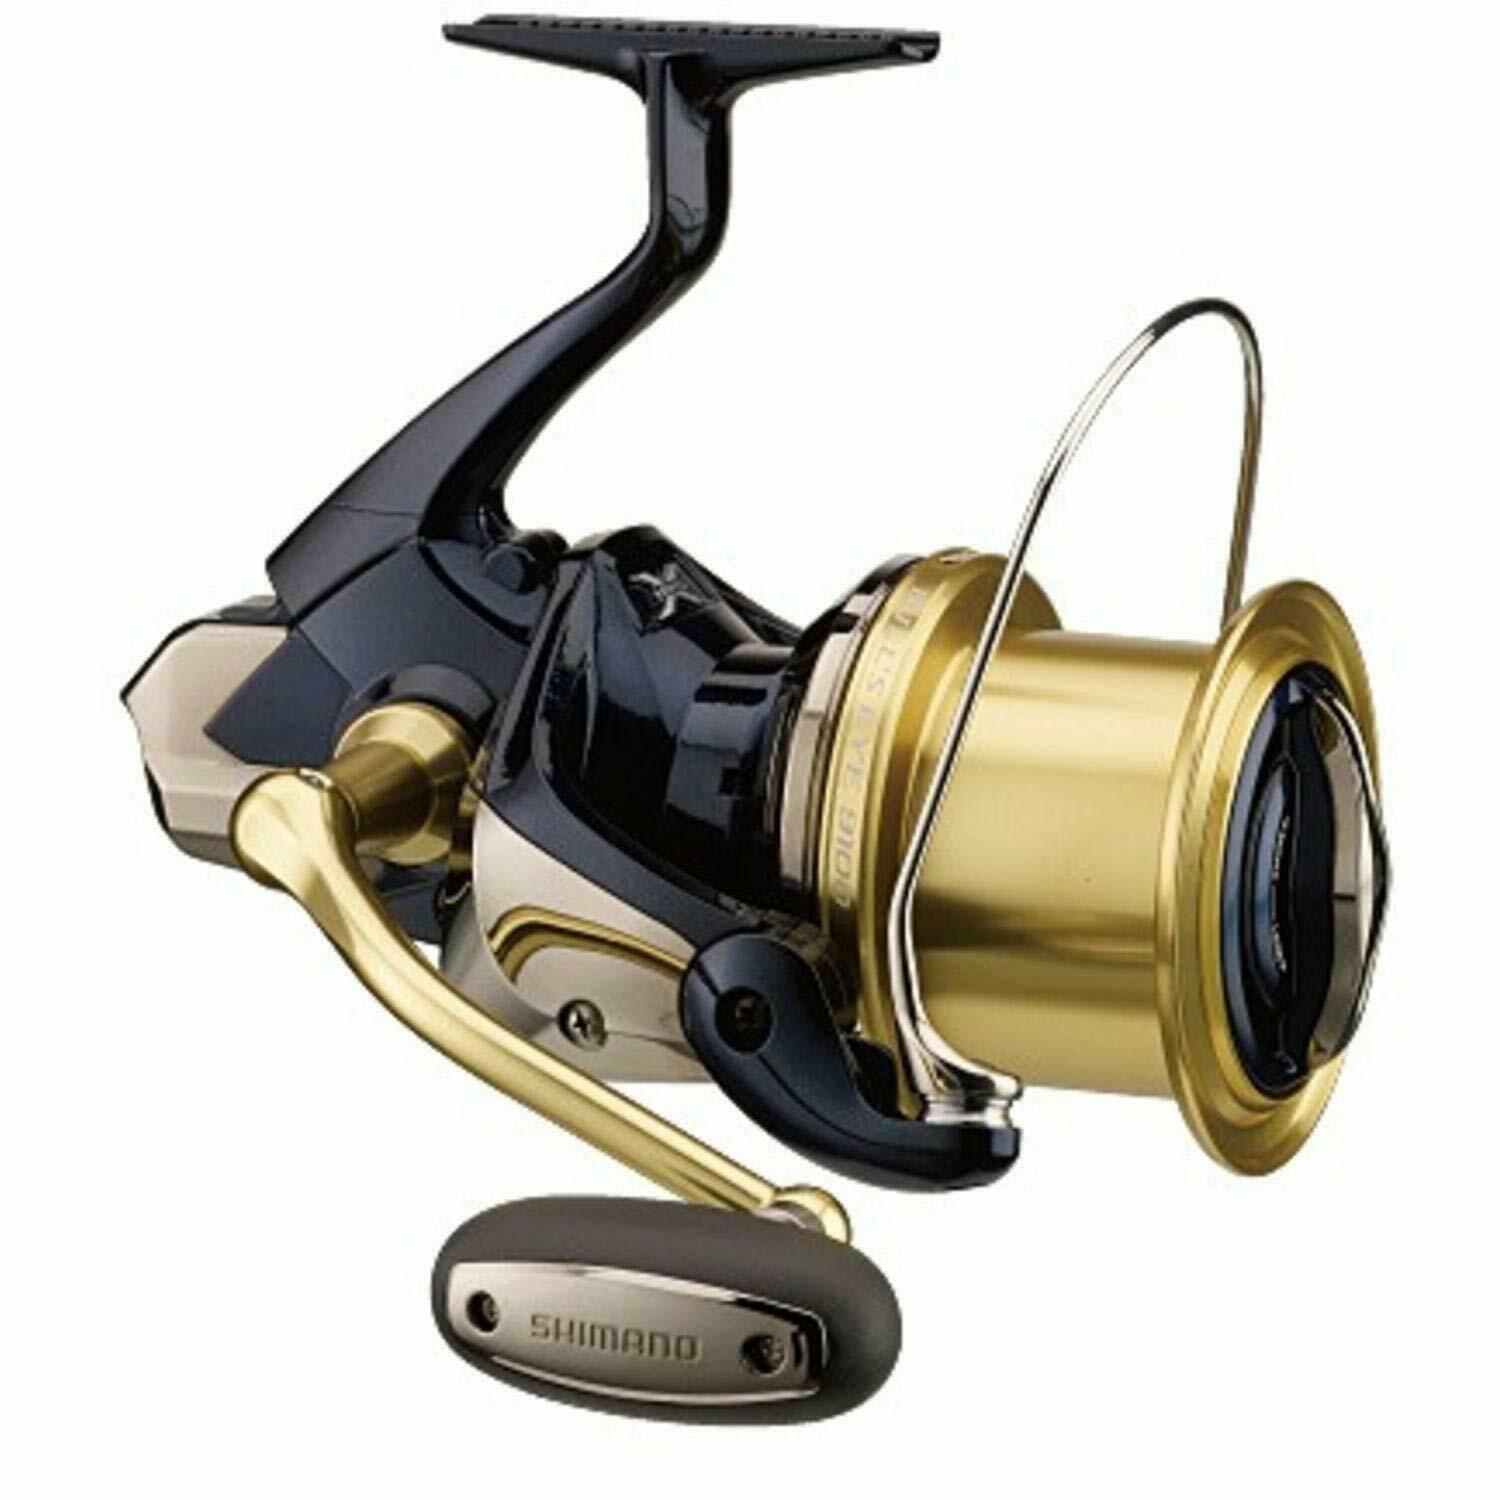 Shiuomoo 14 Bulls Eye 9120 SURF SURF SURF CASTING SPINNING REEL dal Giappone NUOVO 9c2